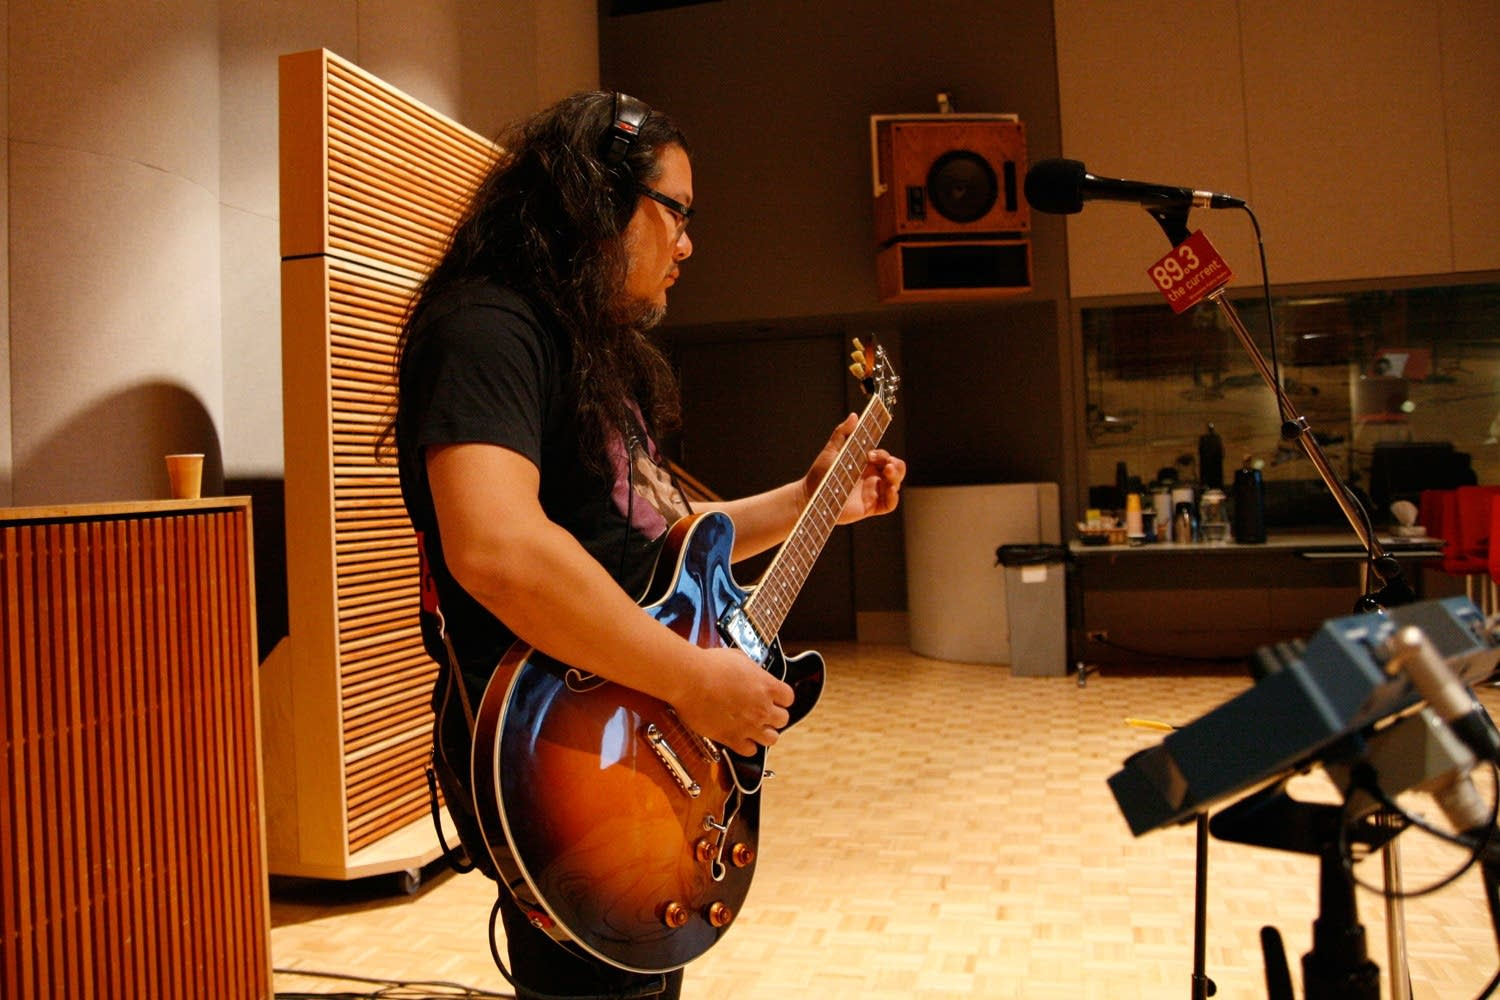 Bobb Bruno plays guitar in The Current studio